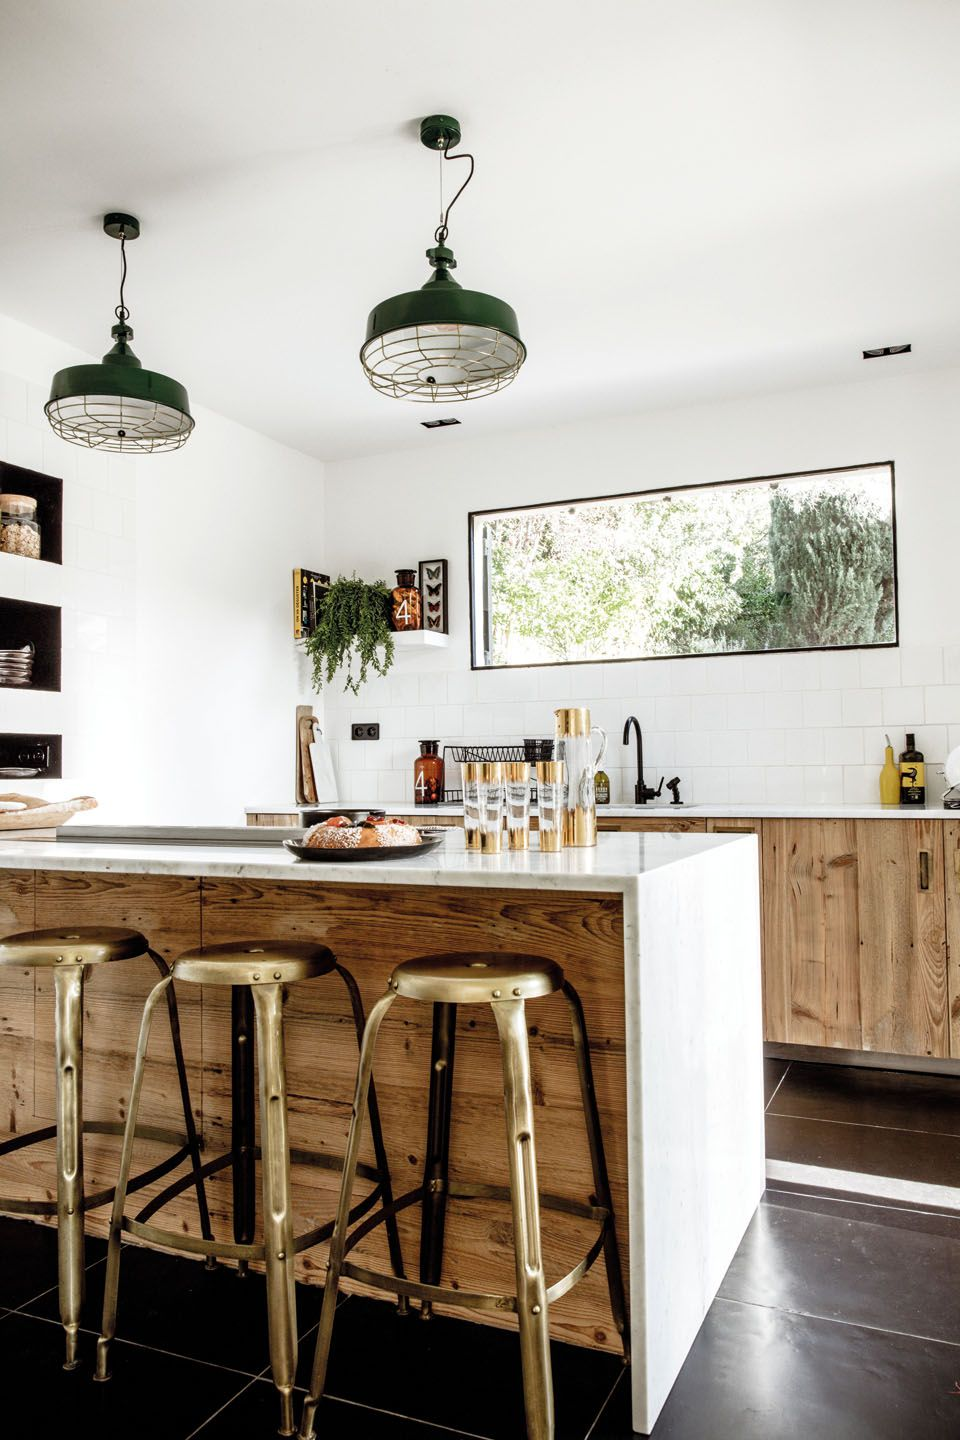 Wooden kitchen with brass metal bar chairs and green hanging